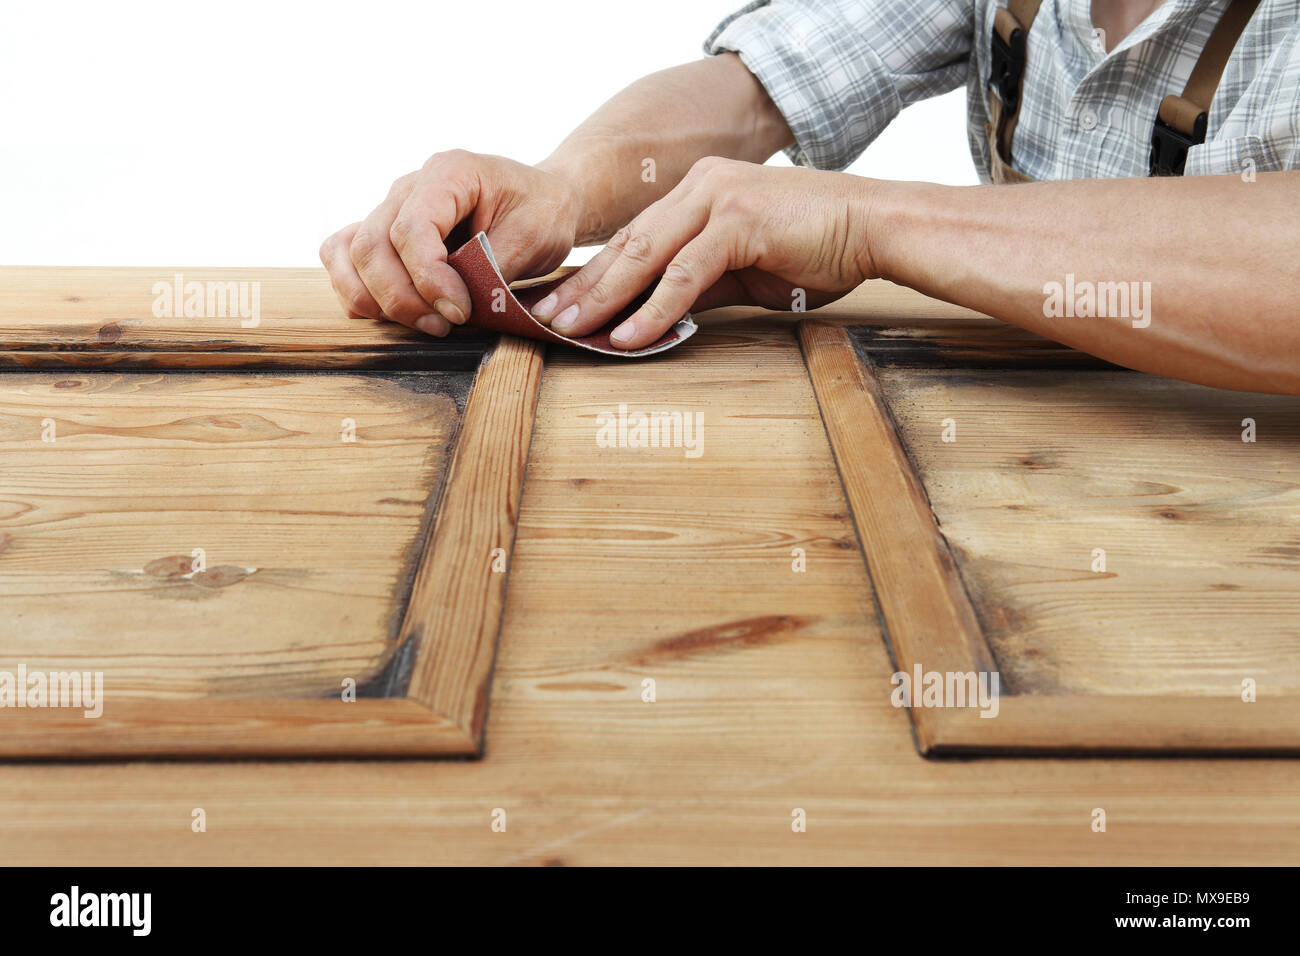 carpenter work the wood with the sandpaper Stock Photo